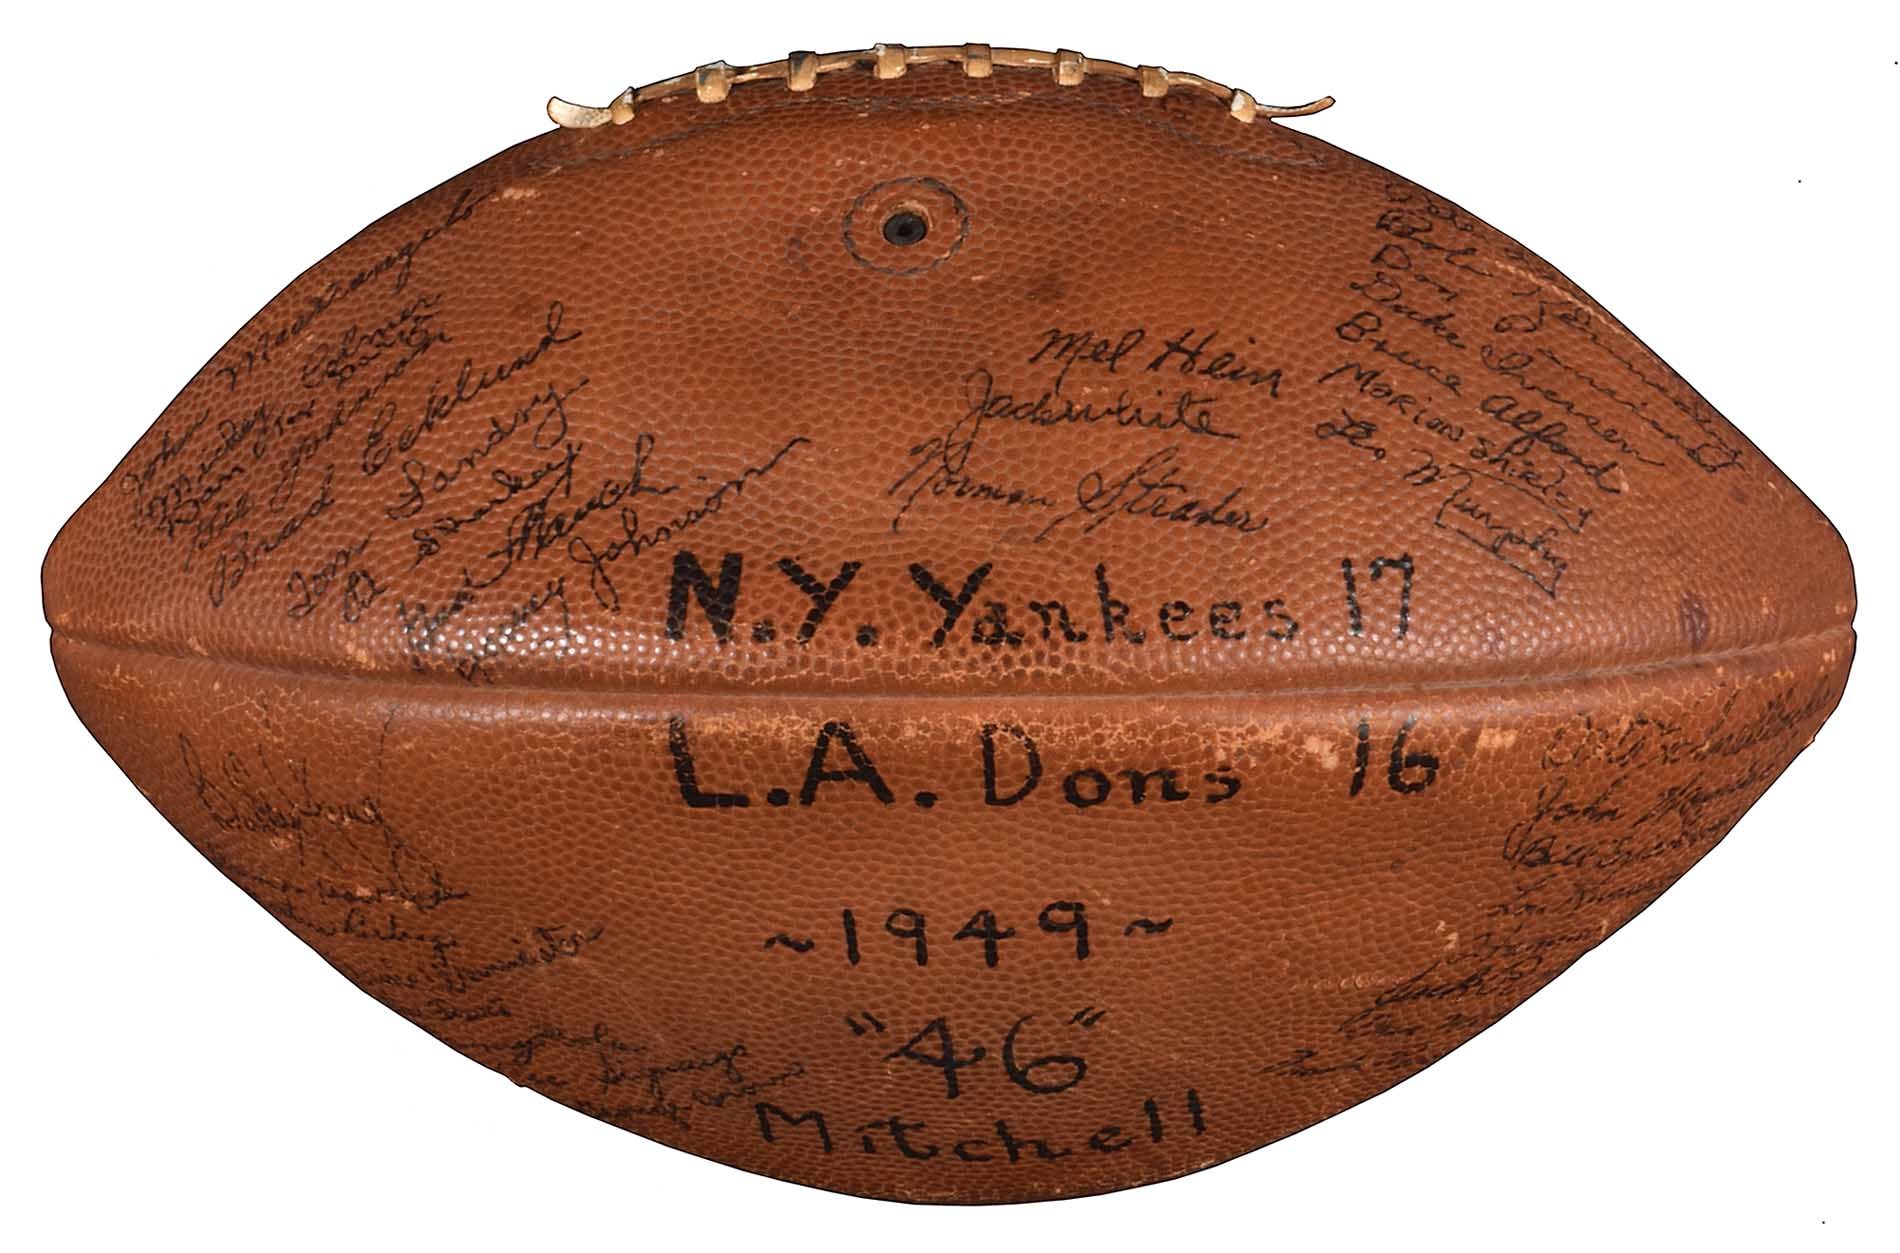 2376-1949-new-york-yankees-team-signed-game-used-aafc-football-1950-panoramic-photos-paul-mitchell-collection-2.jpg